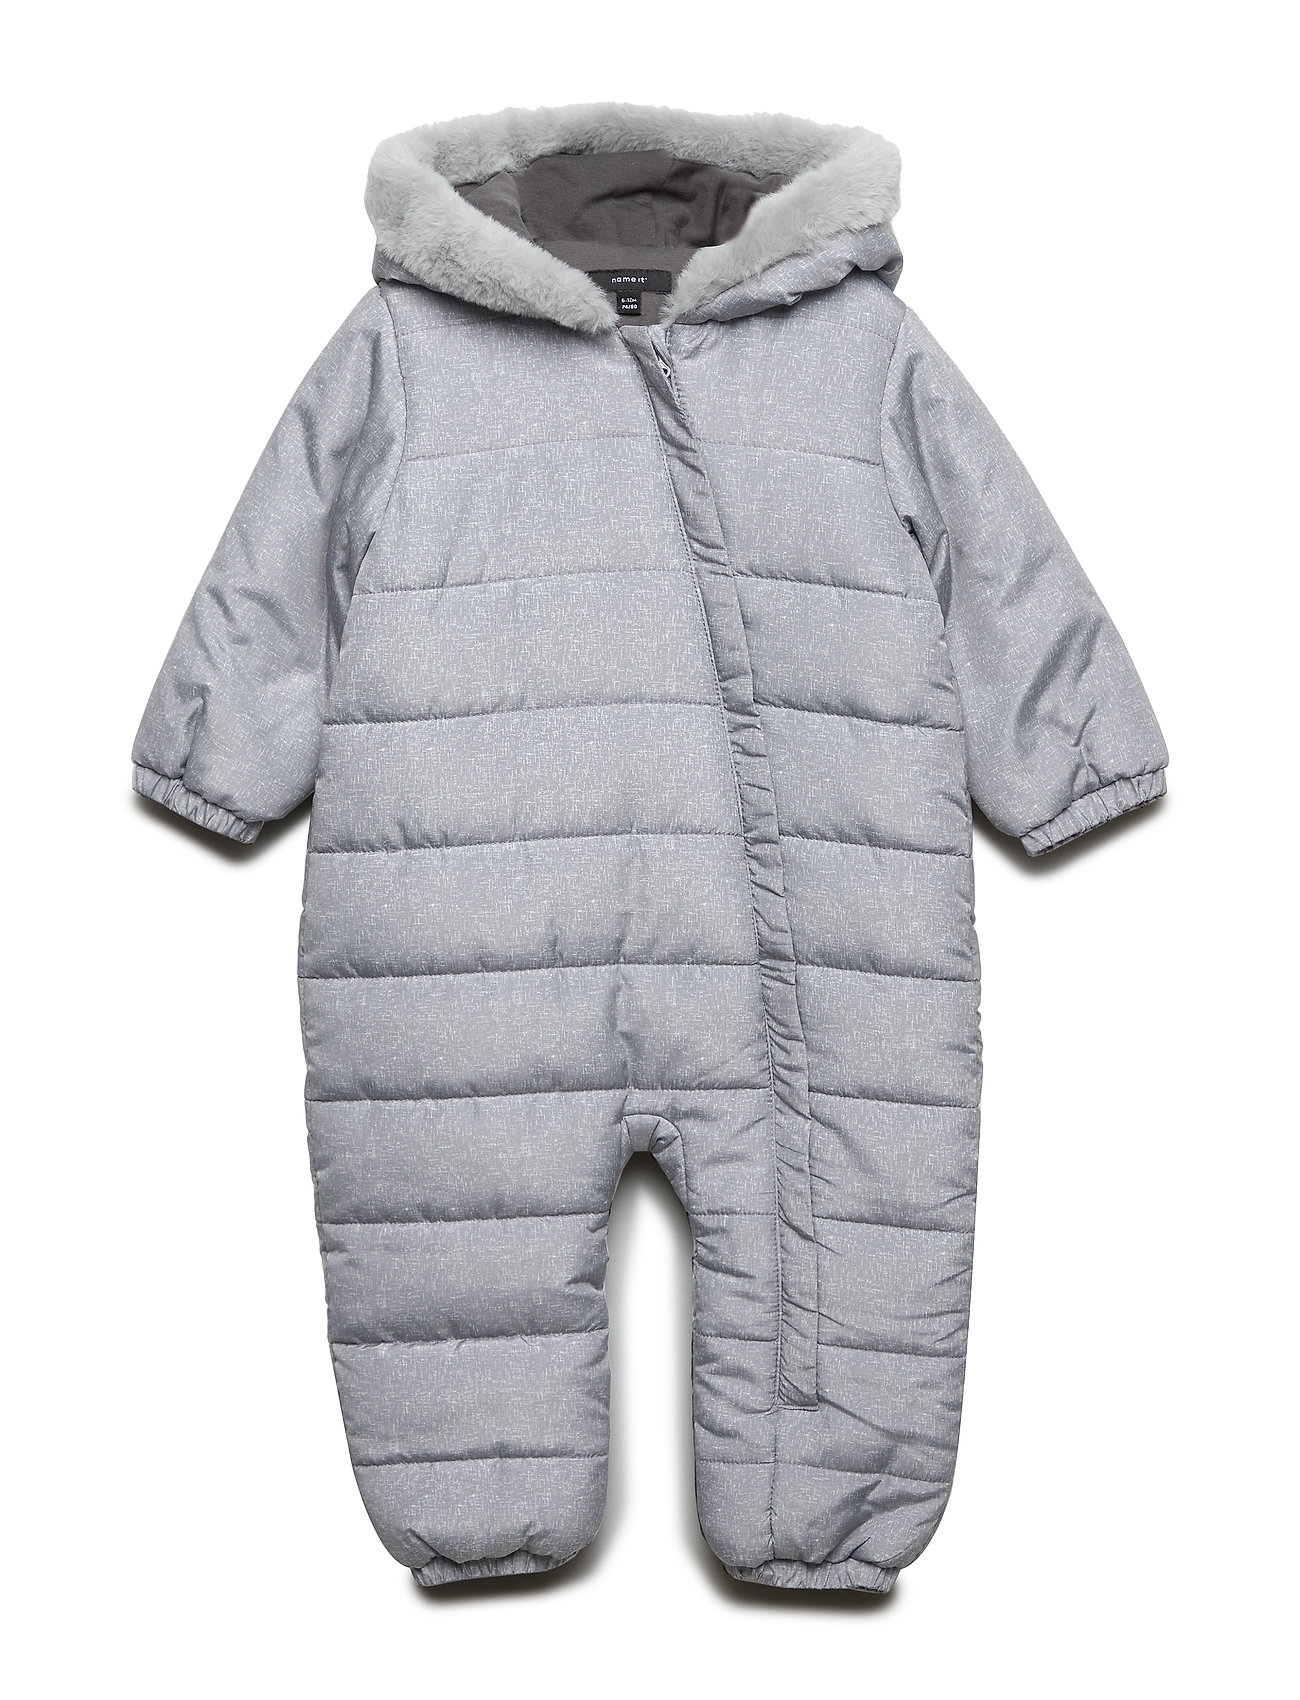 Image of Nbnmoi Suit Outerwear Snow/ski Clothing Snow/ski Suits & Sets Grå Name It (3220881693)